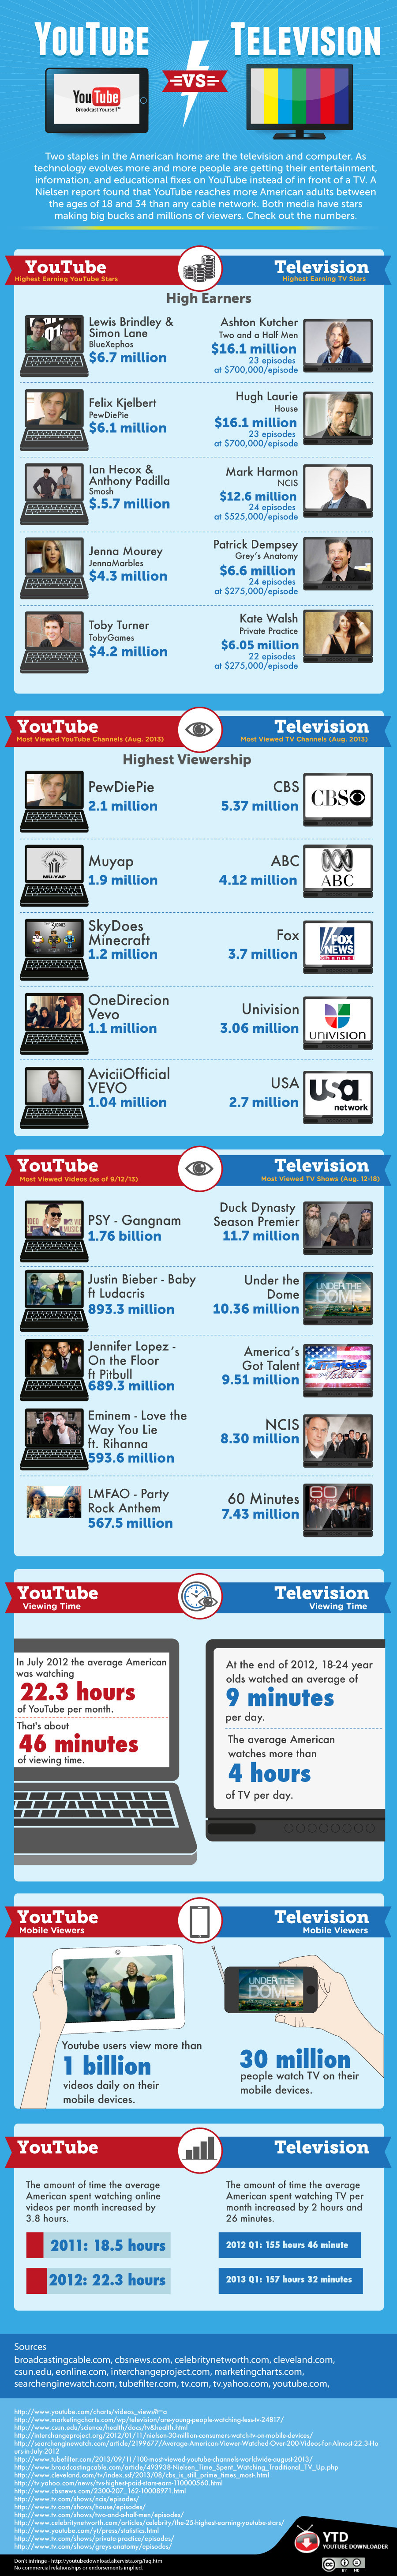 youtube-vs-tv